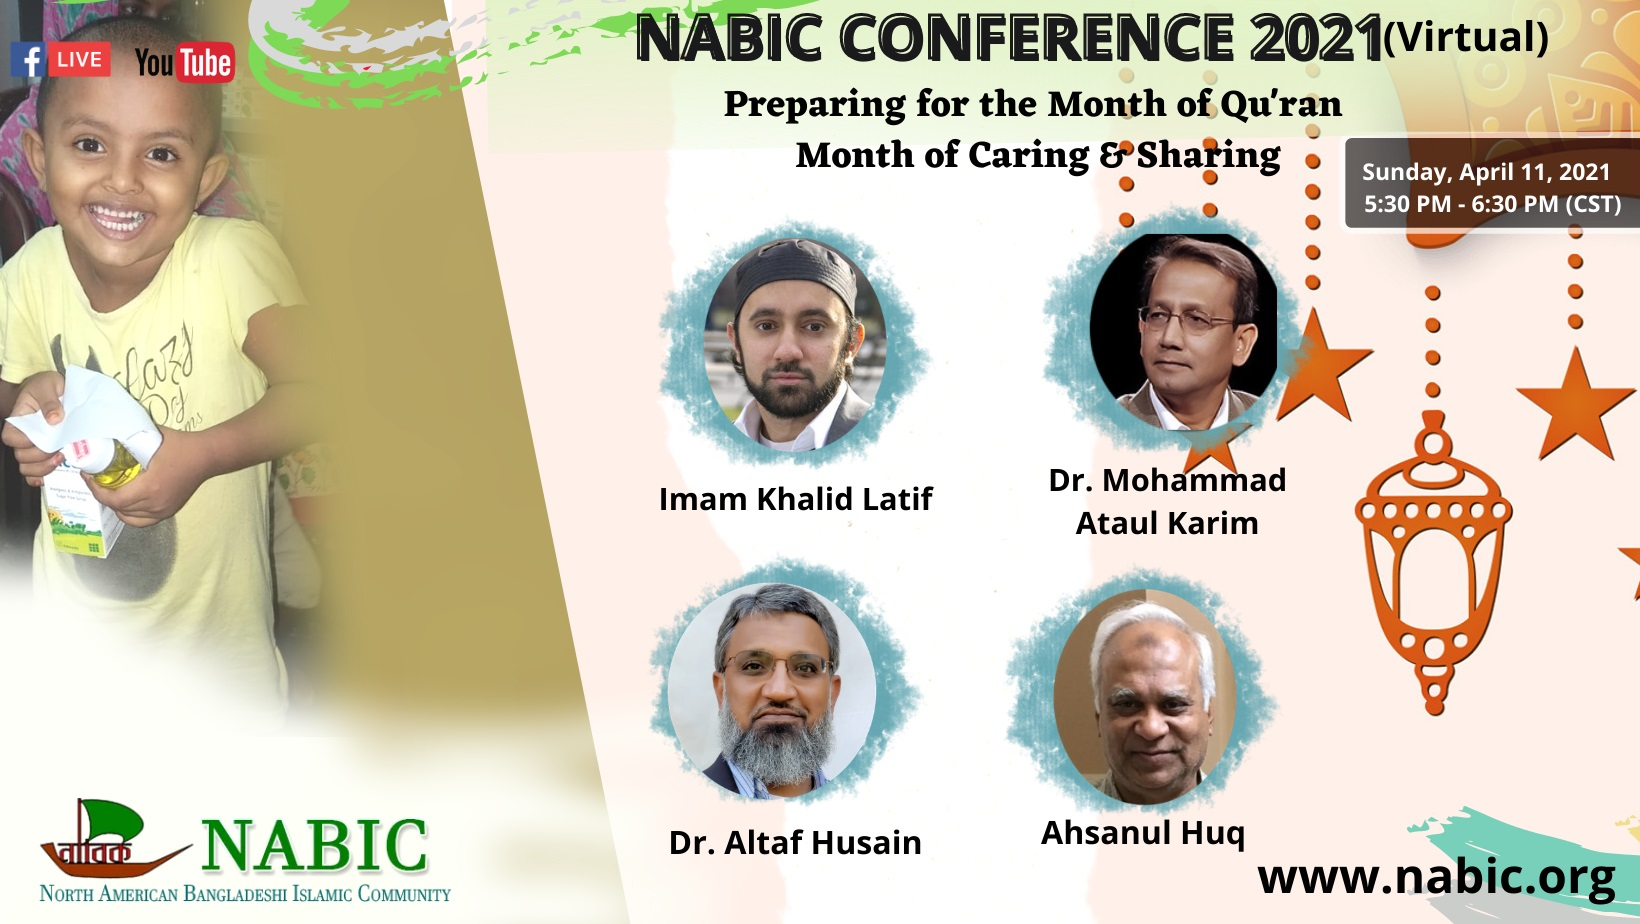 NABIC Event Heading to The Ramadan